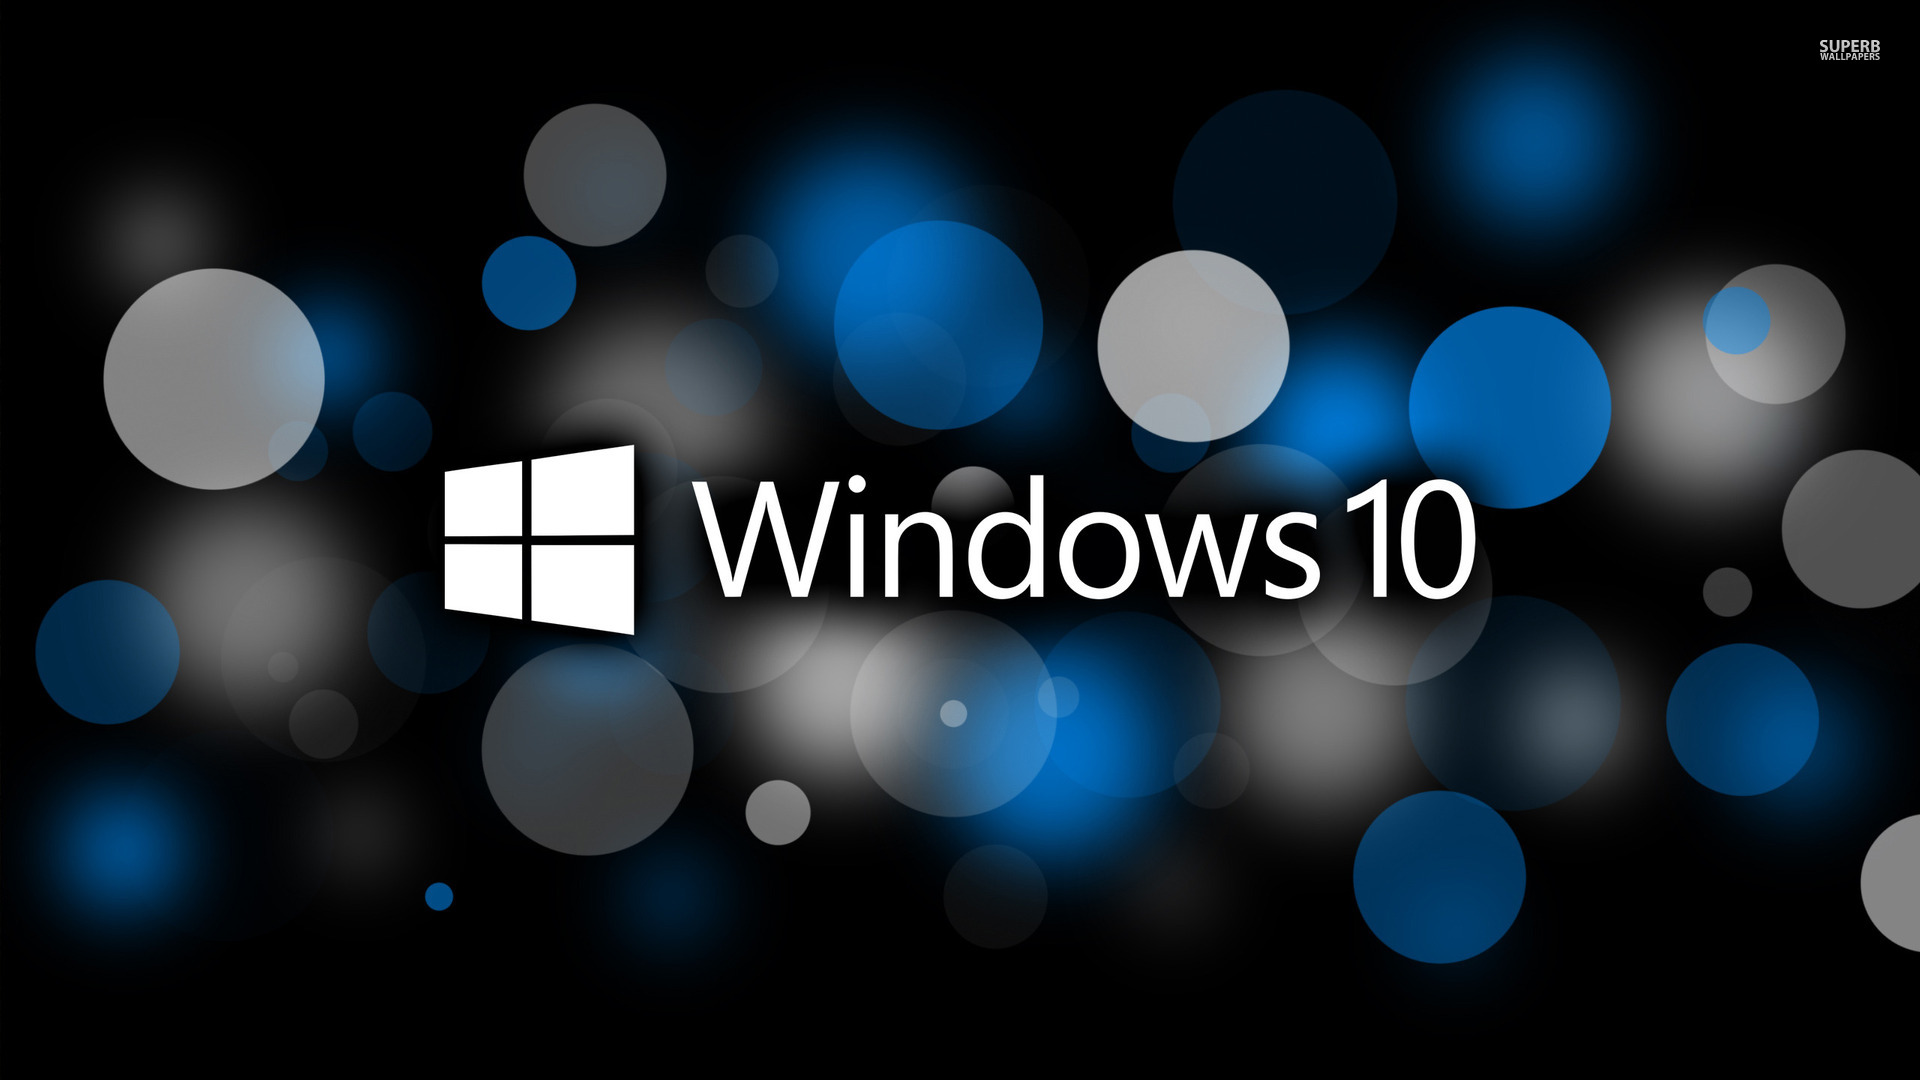 Big Windows 10 Pc Backgrounds, Gsfdcy - Window 10 Wallpaper For Pc - HD Wallpaper